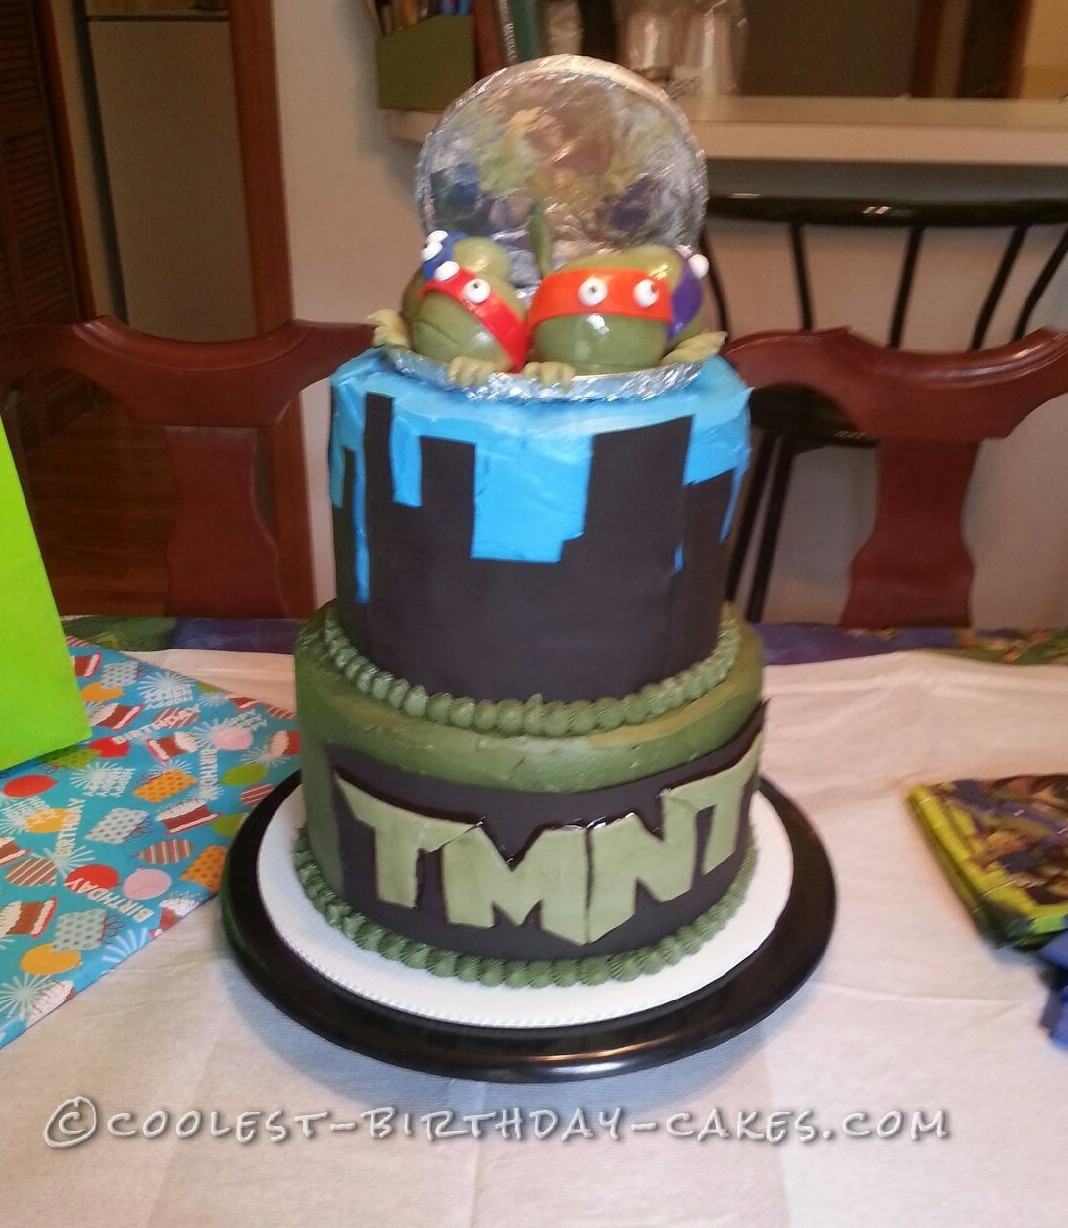 I Made This TMNT Cake For My Little Buddy William On His 2nd Birthday He And Father Are Huge Teenage Mutant Ninja Turtle Fans Dad Wanted A